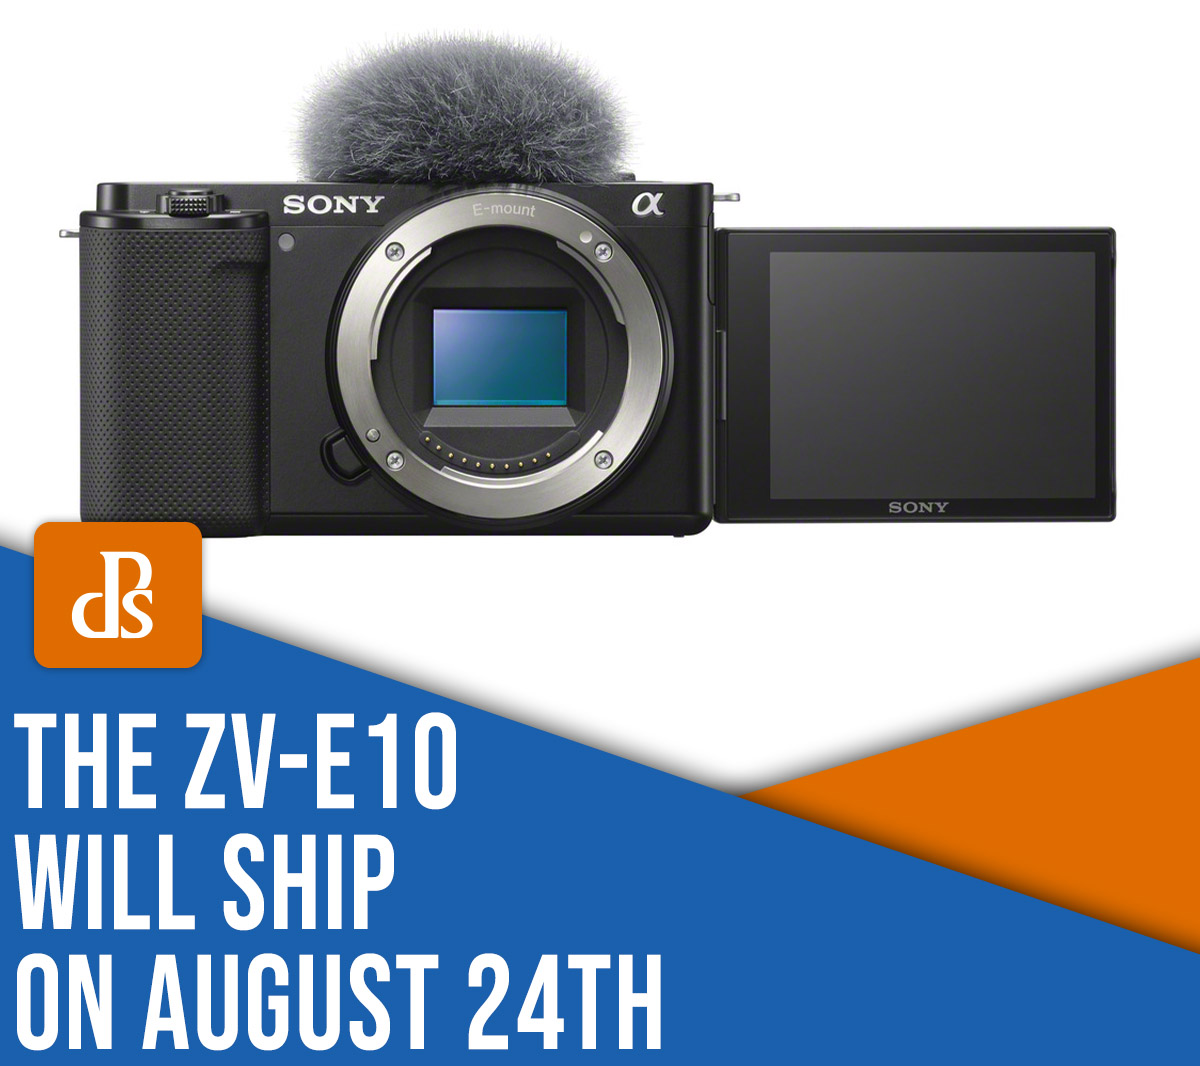 The ZV-E10, Sony's First Interchangeable-Lens Vlog Camera, Will Ship on the 24th